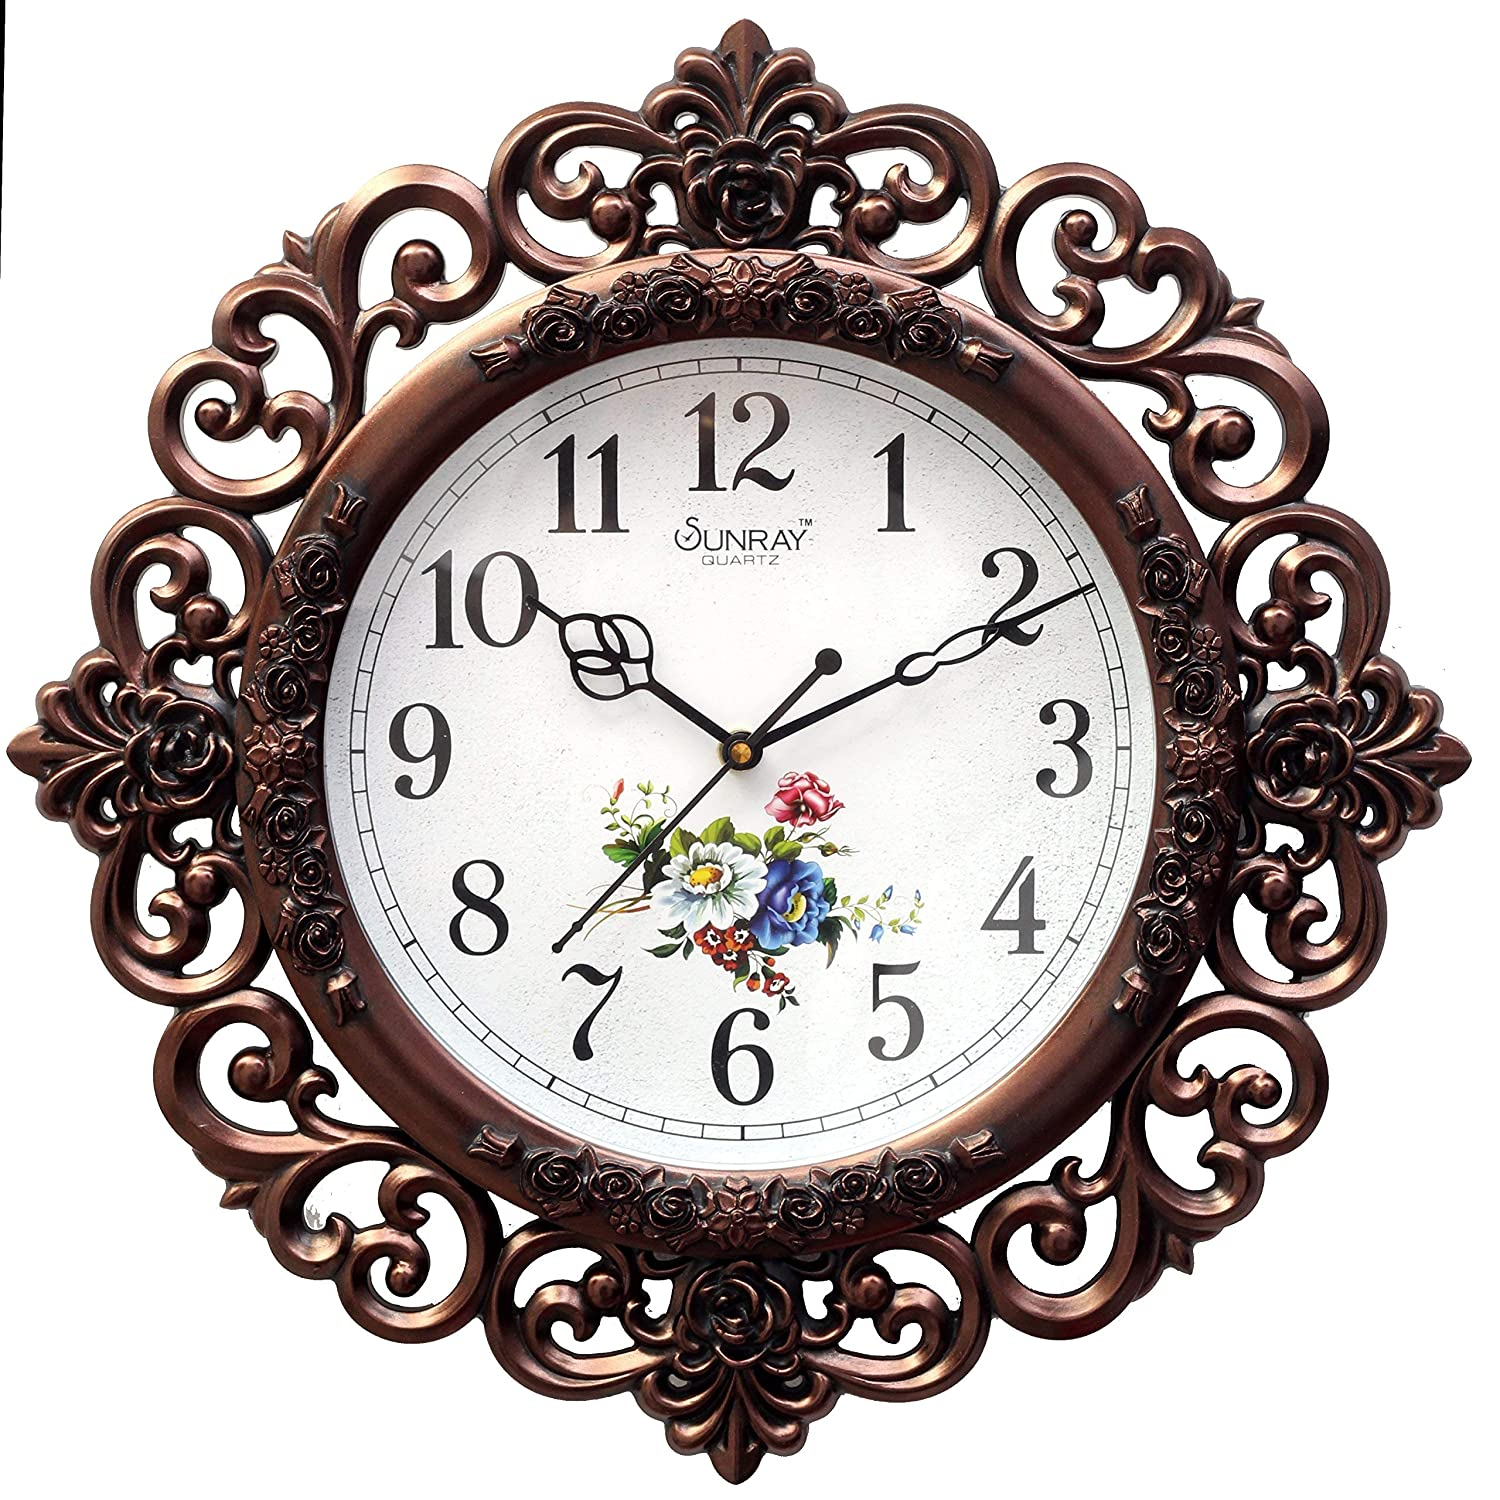 Buy E Deal Acrylic Floral Design Wall Clock Brown 30 X 36 X 5 Cm Online At Low Prices In India Amazon In